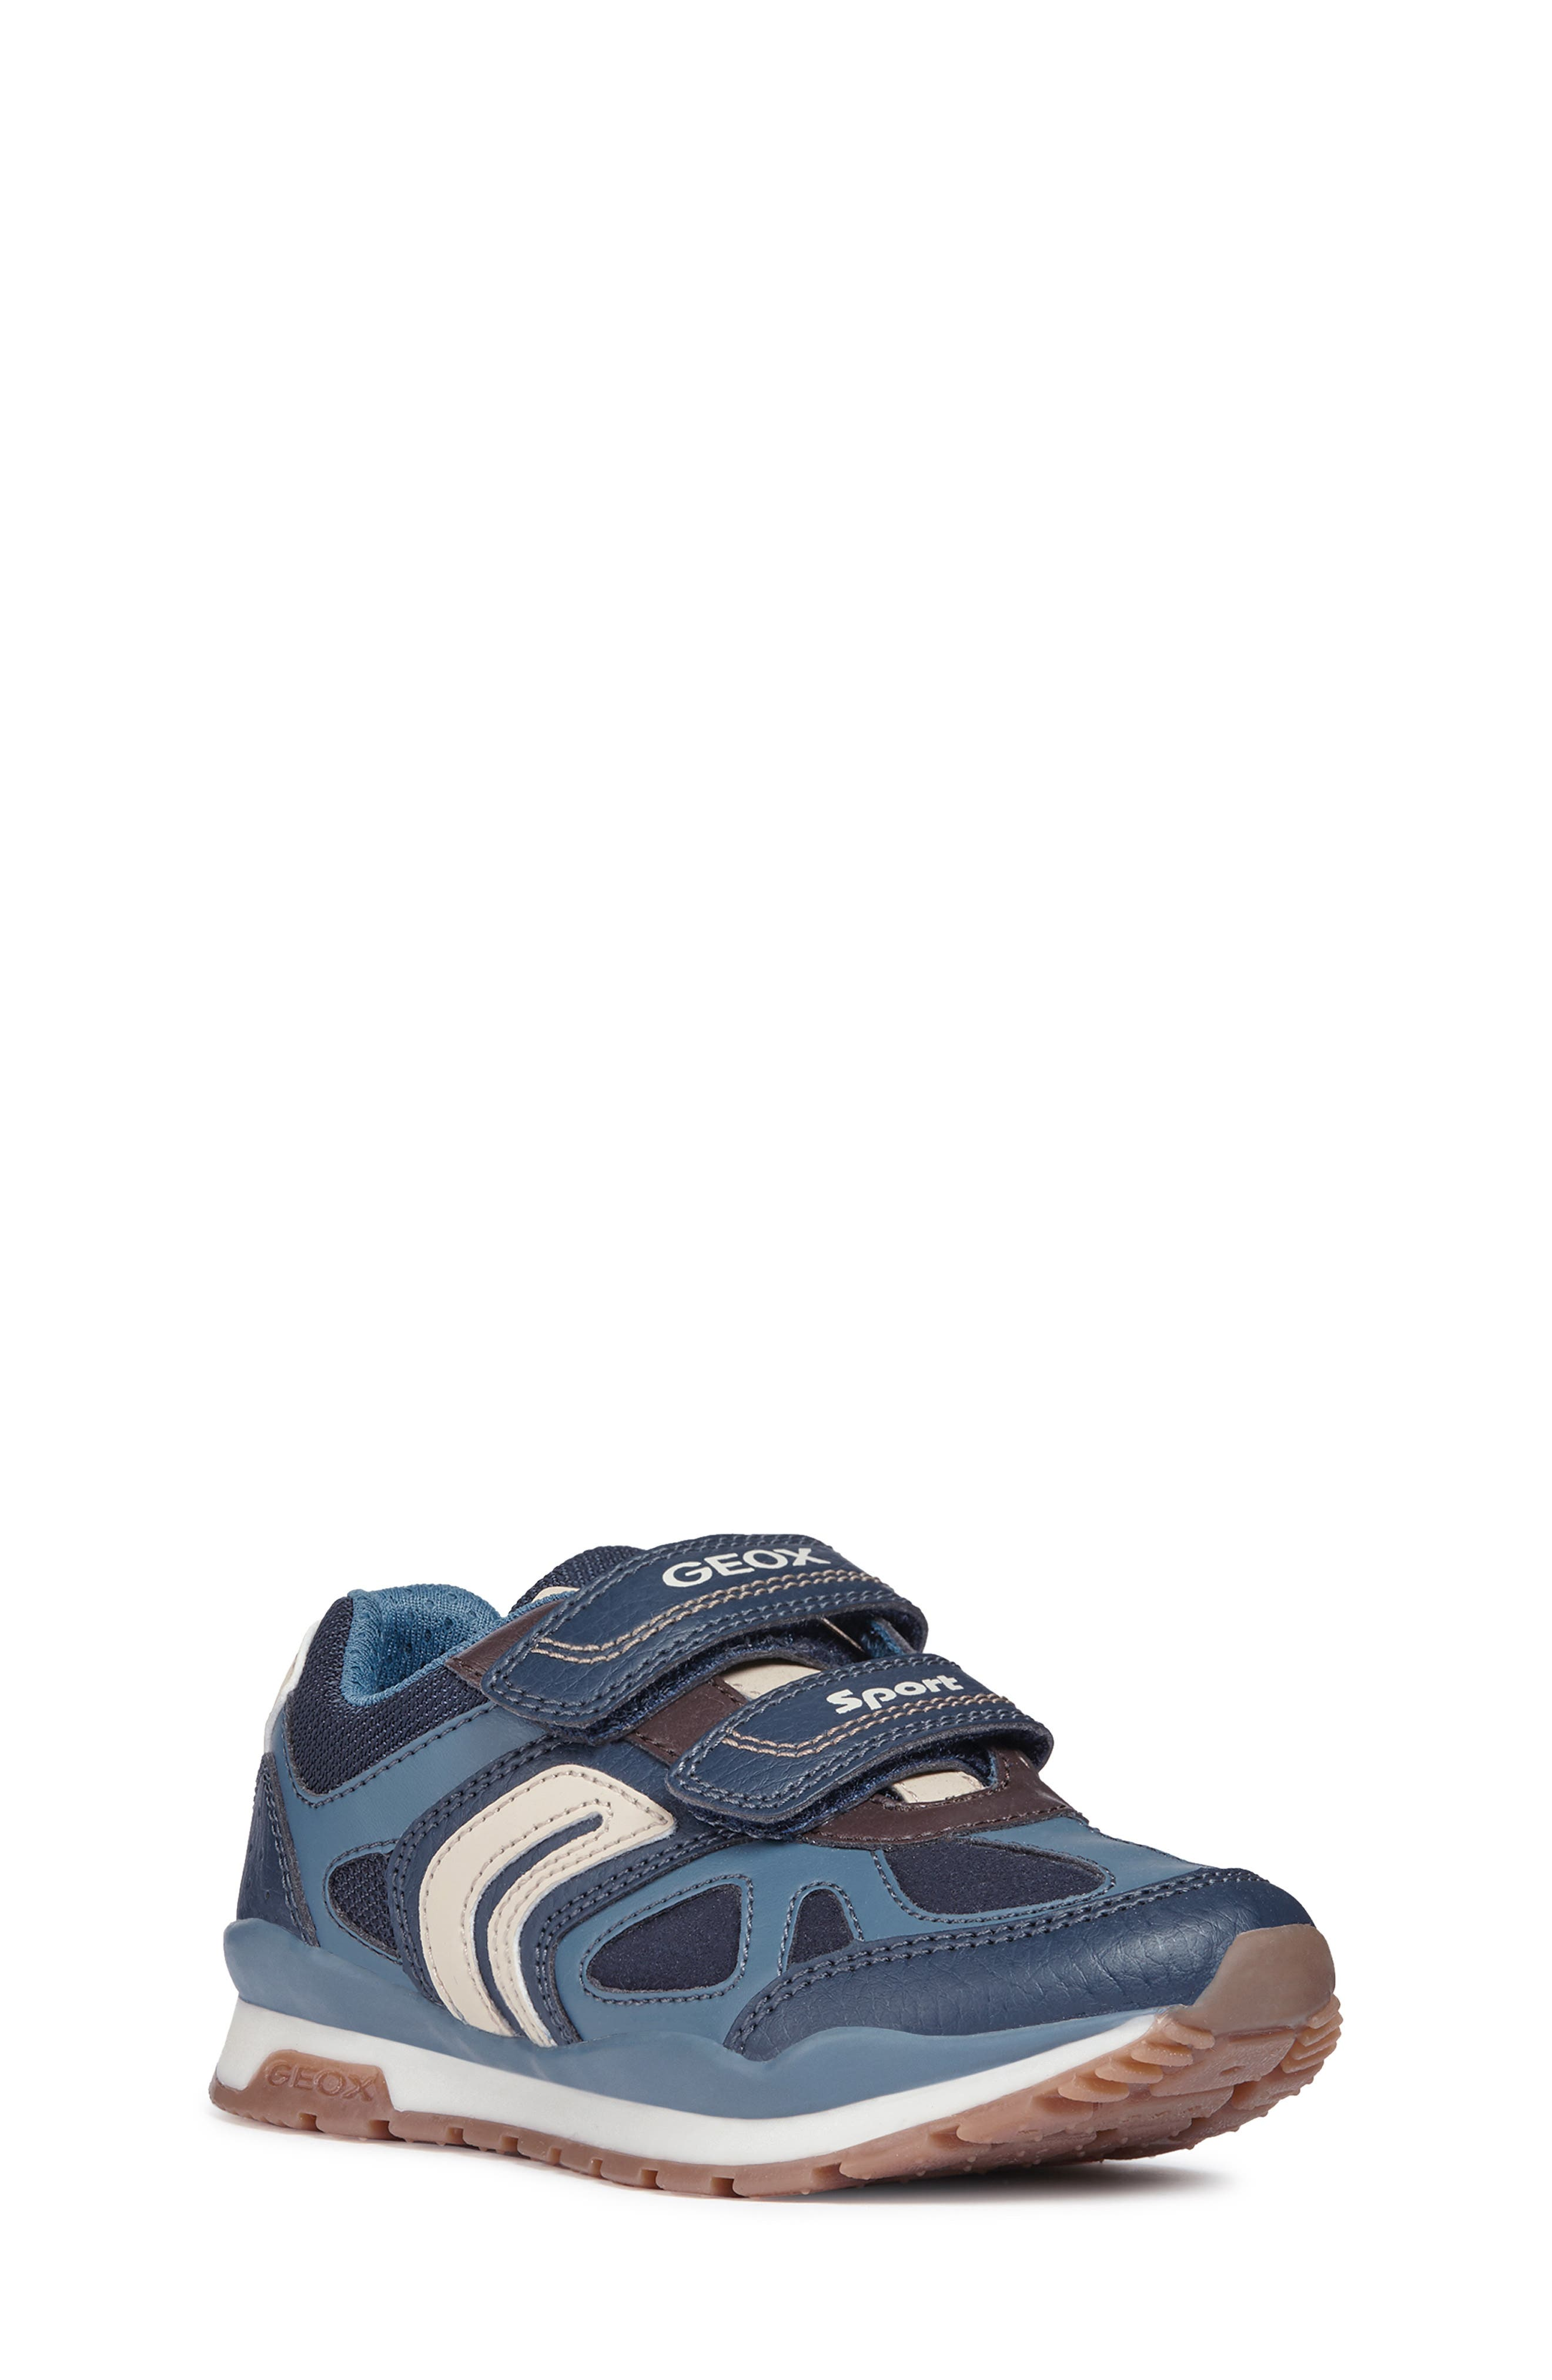 Pavel Sneaker,                         Main,                         color, Navy/Avio